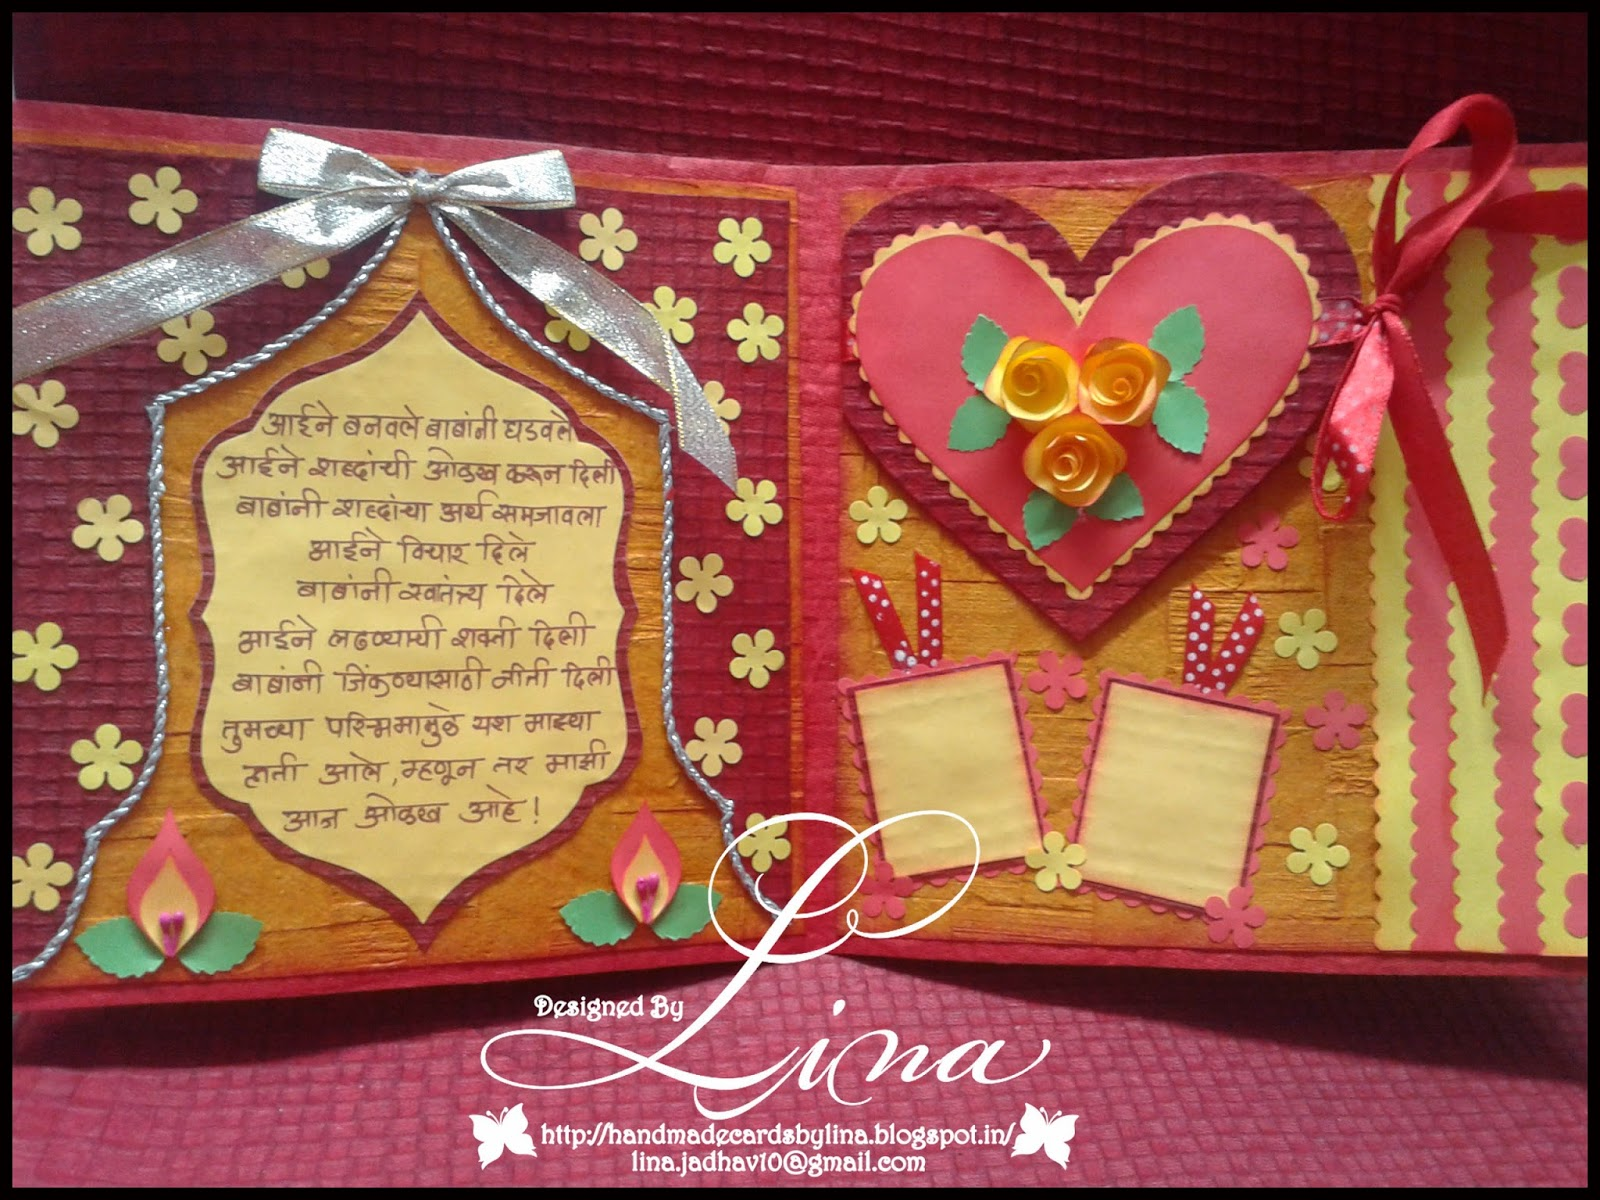 Lina s handmade cards wedding anniversry card for parents